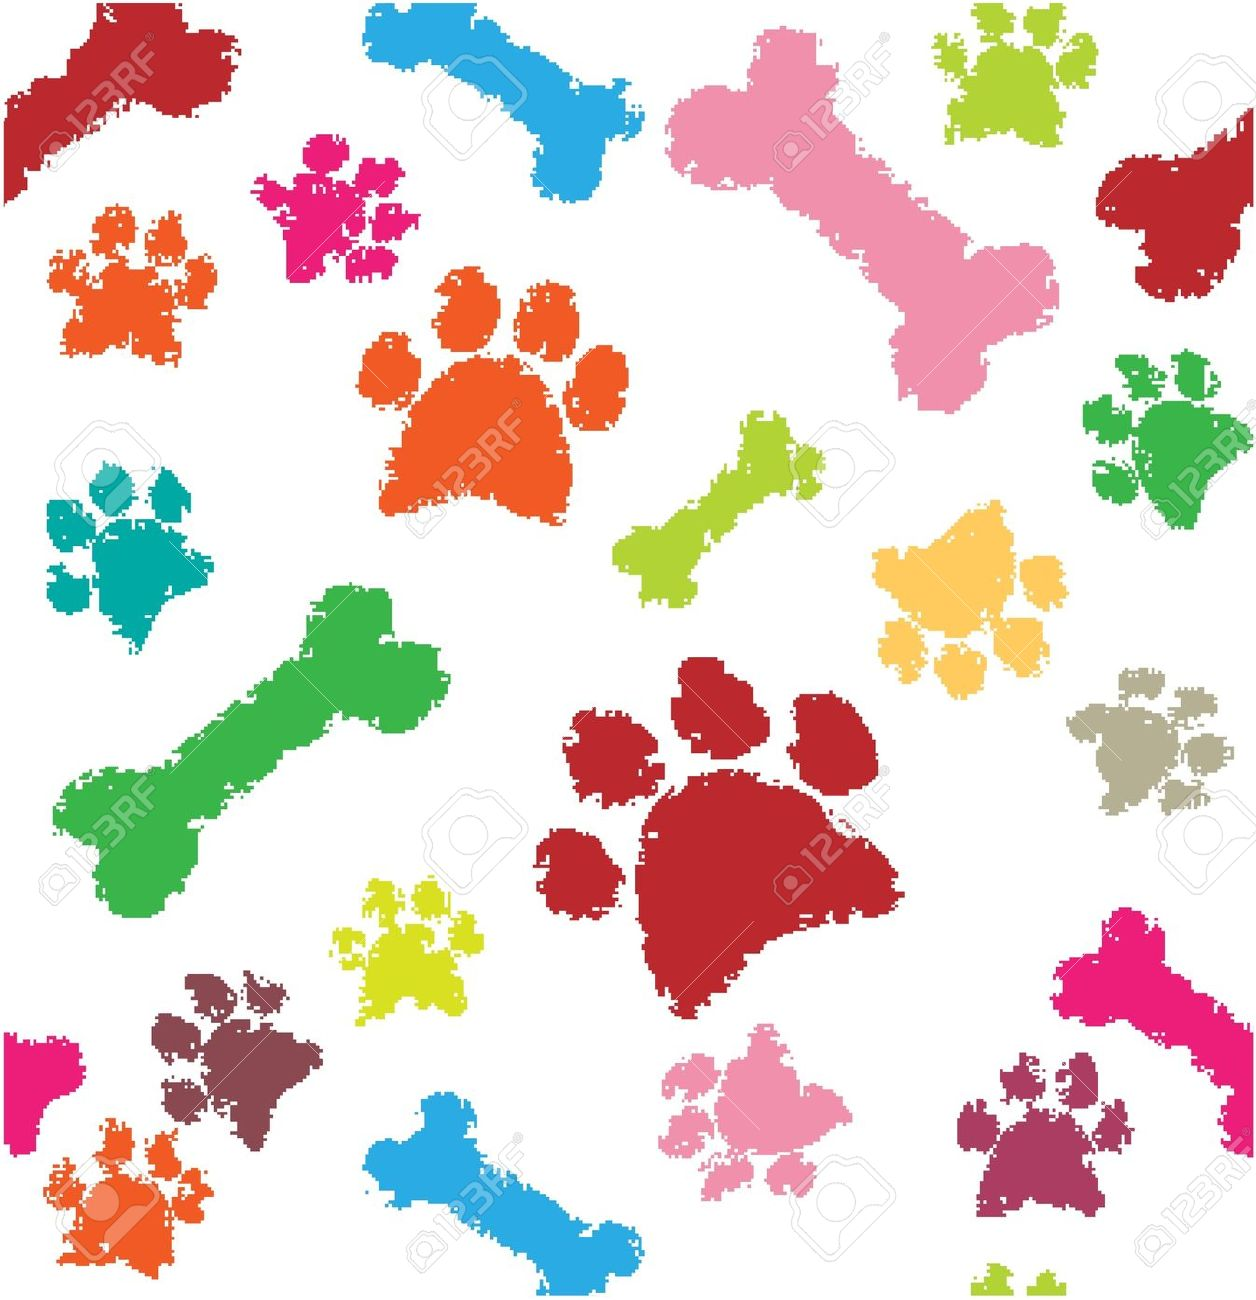 just think its cute with all the colors and bones.